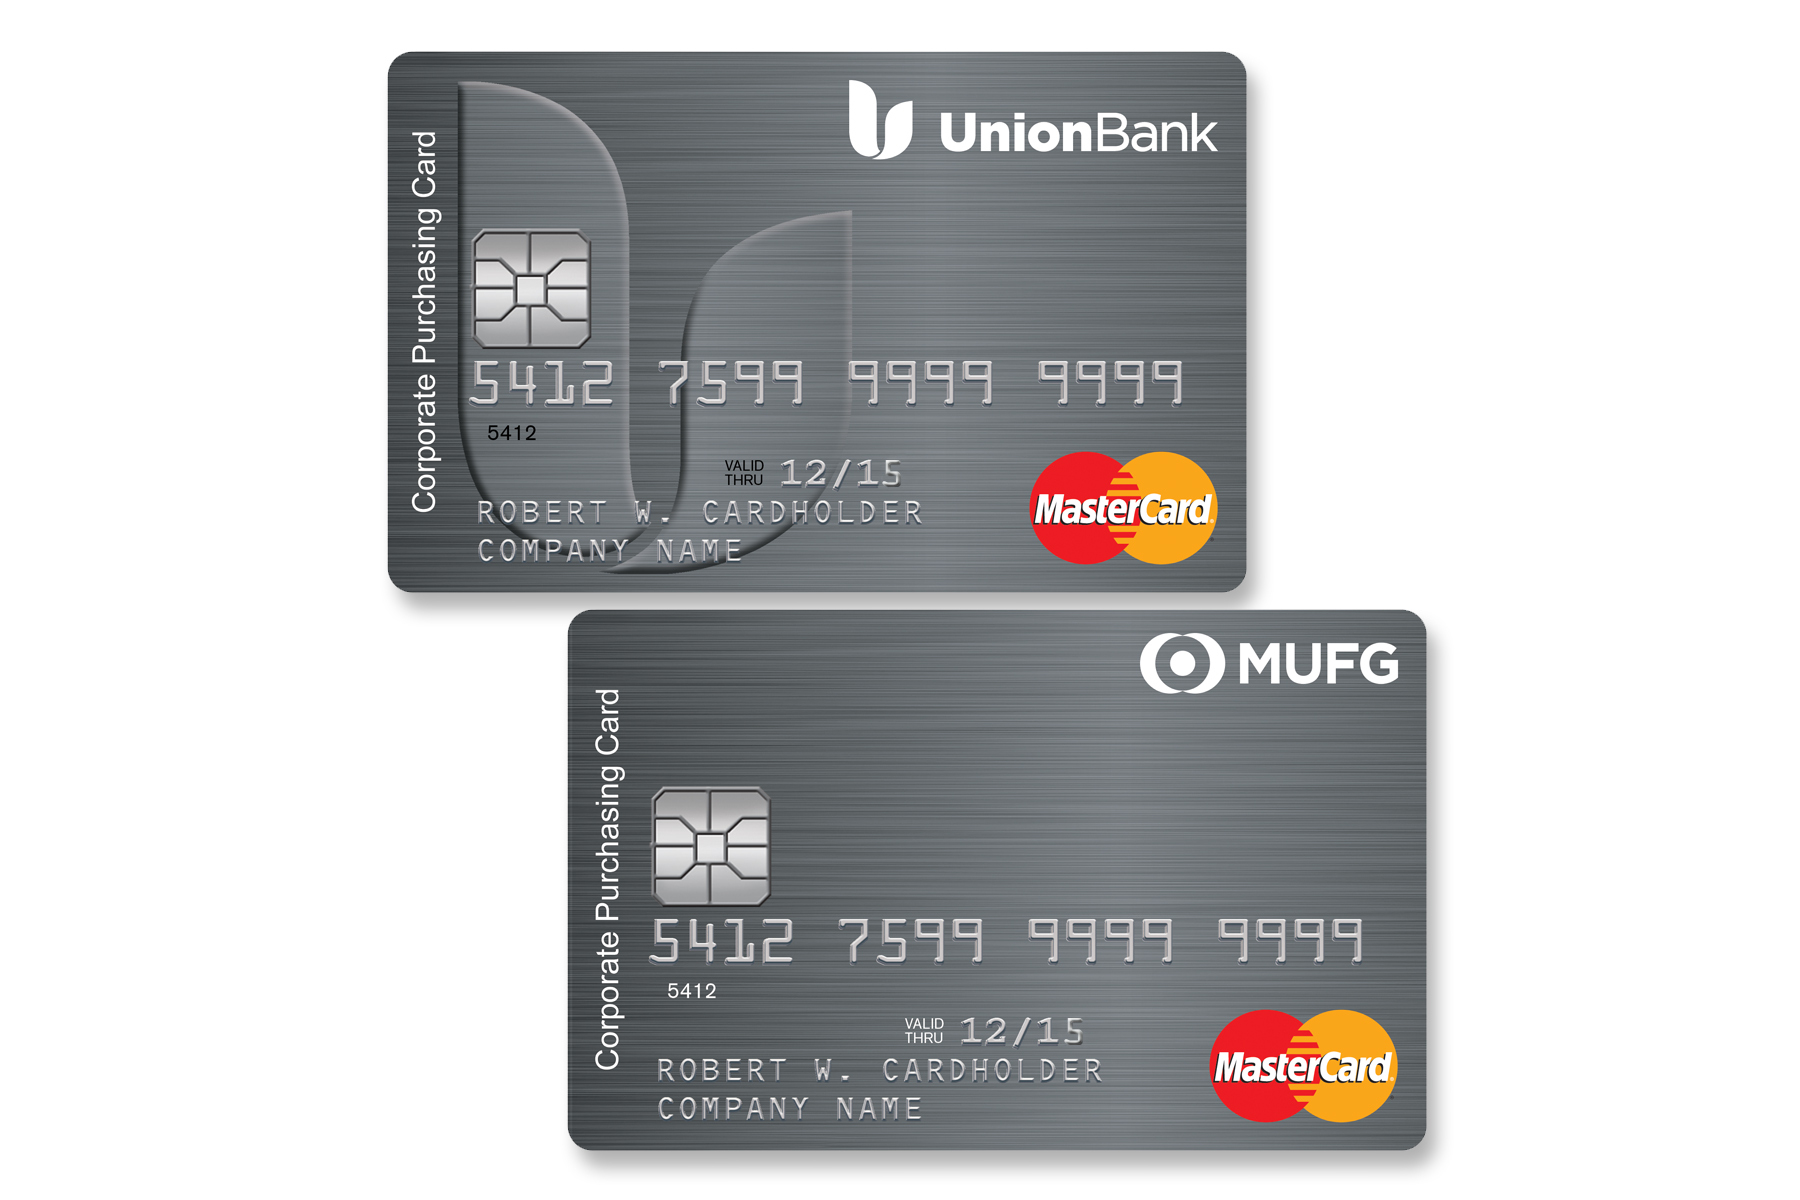 Mufg union bank launches new commercial card program for corporate mufg union bank launches new commercial card program for corporate clients business wire magicingreecefo Images